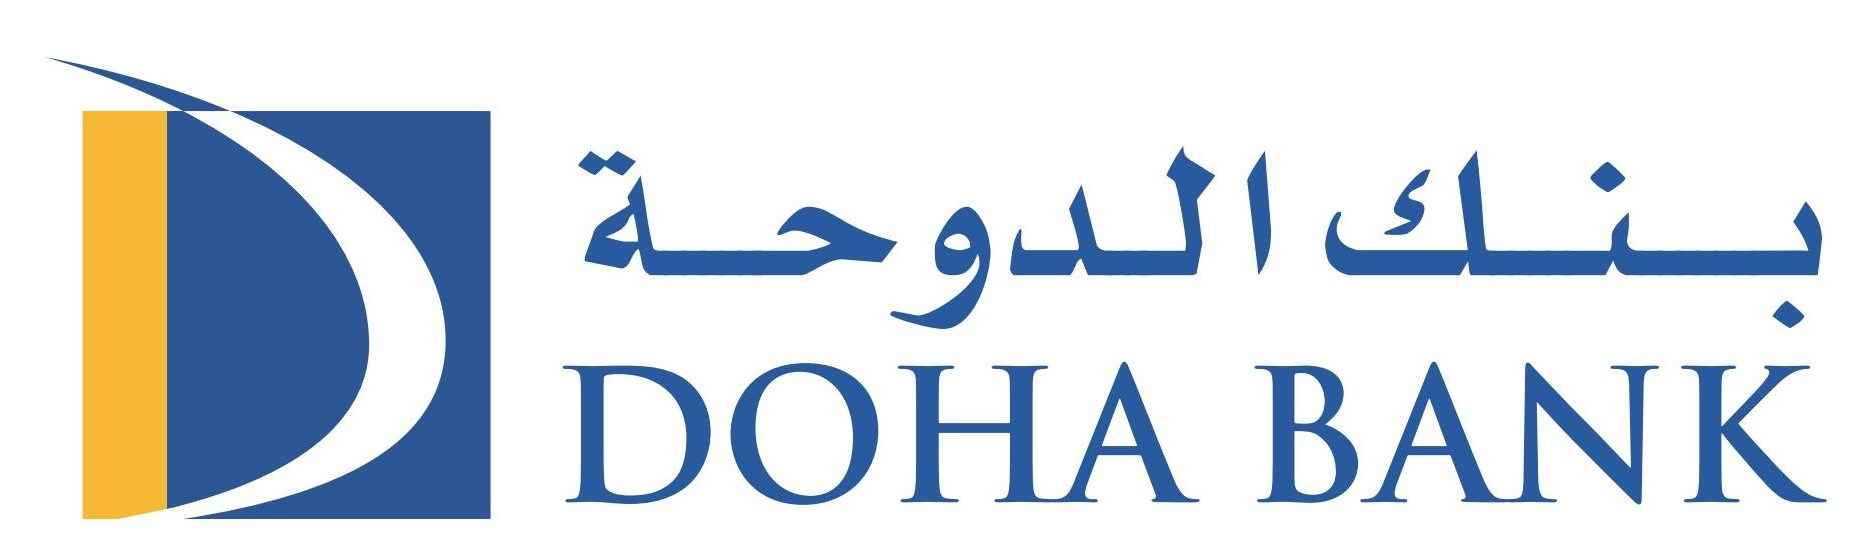 Doha Bank Logo [EPS File] png